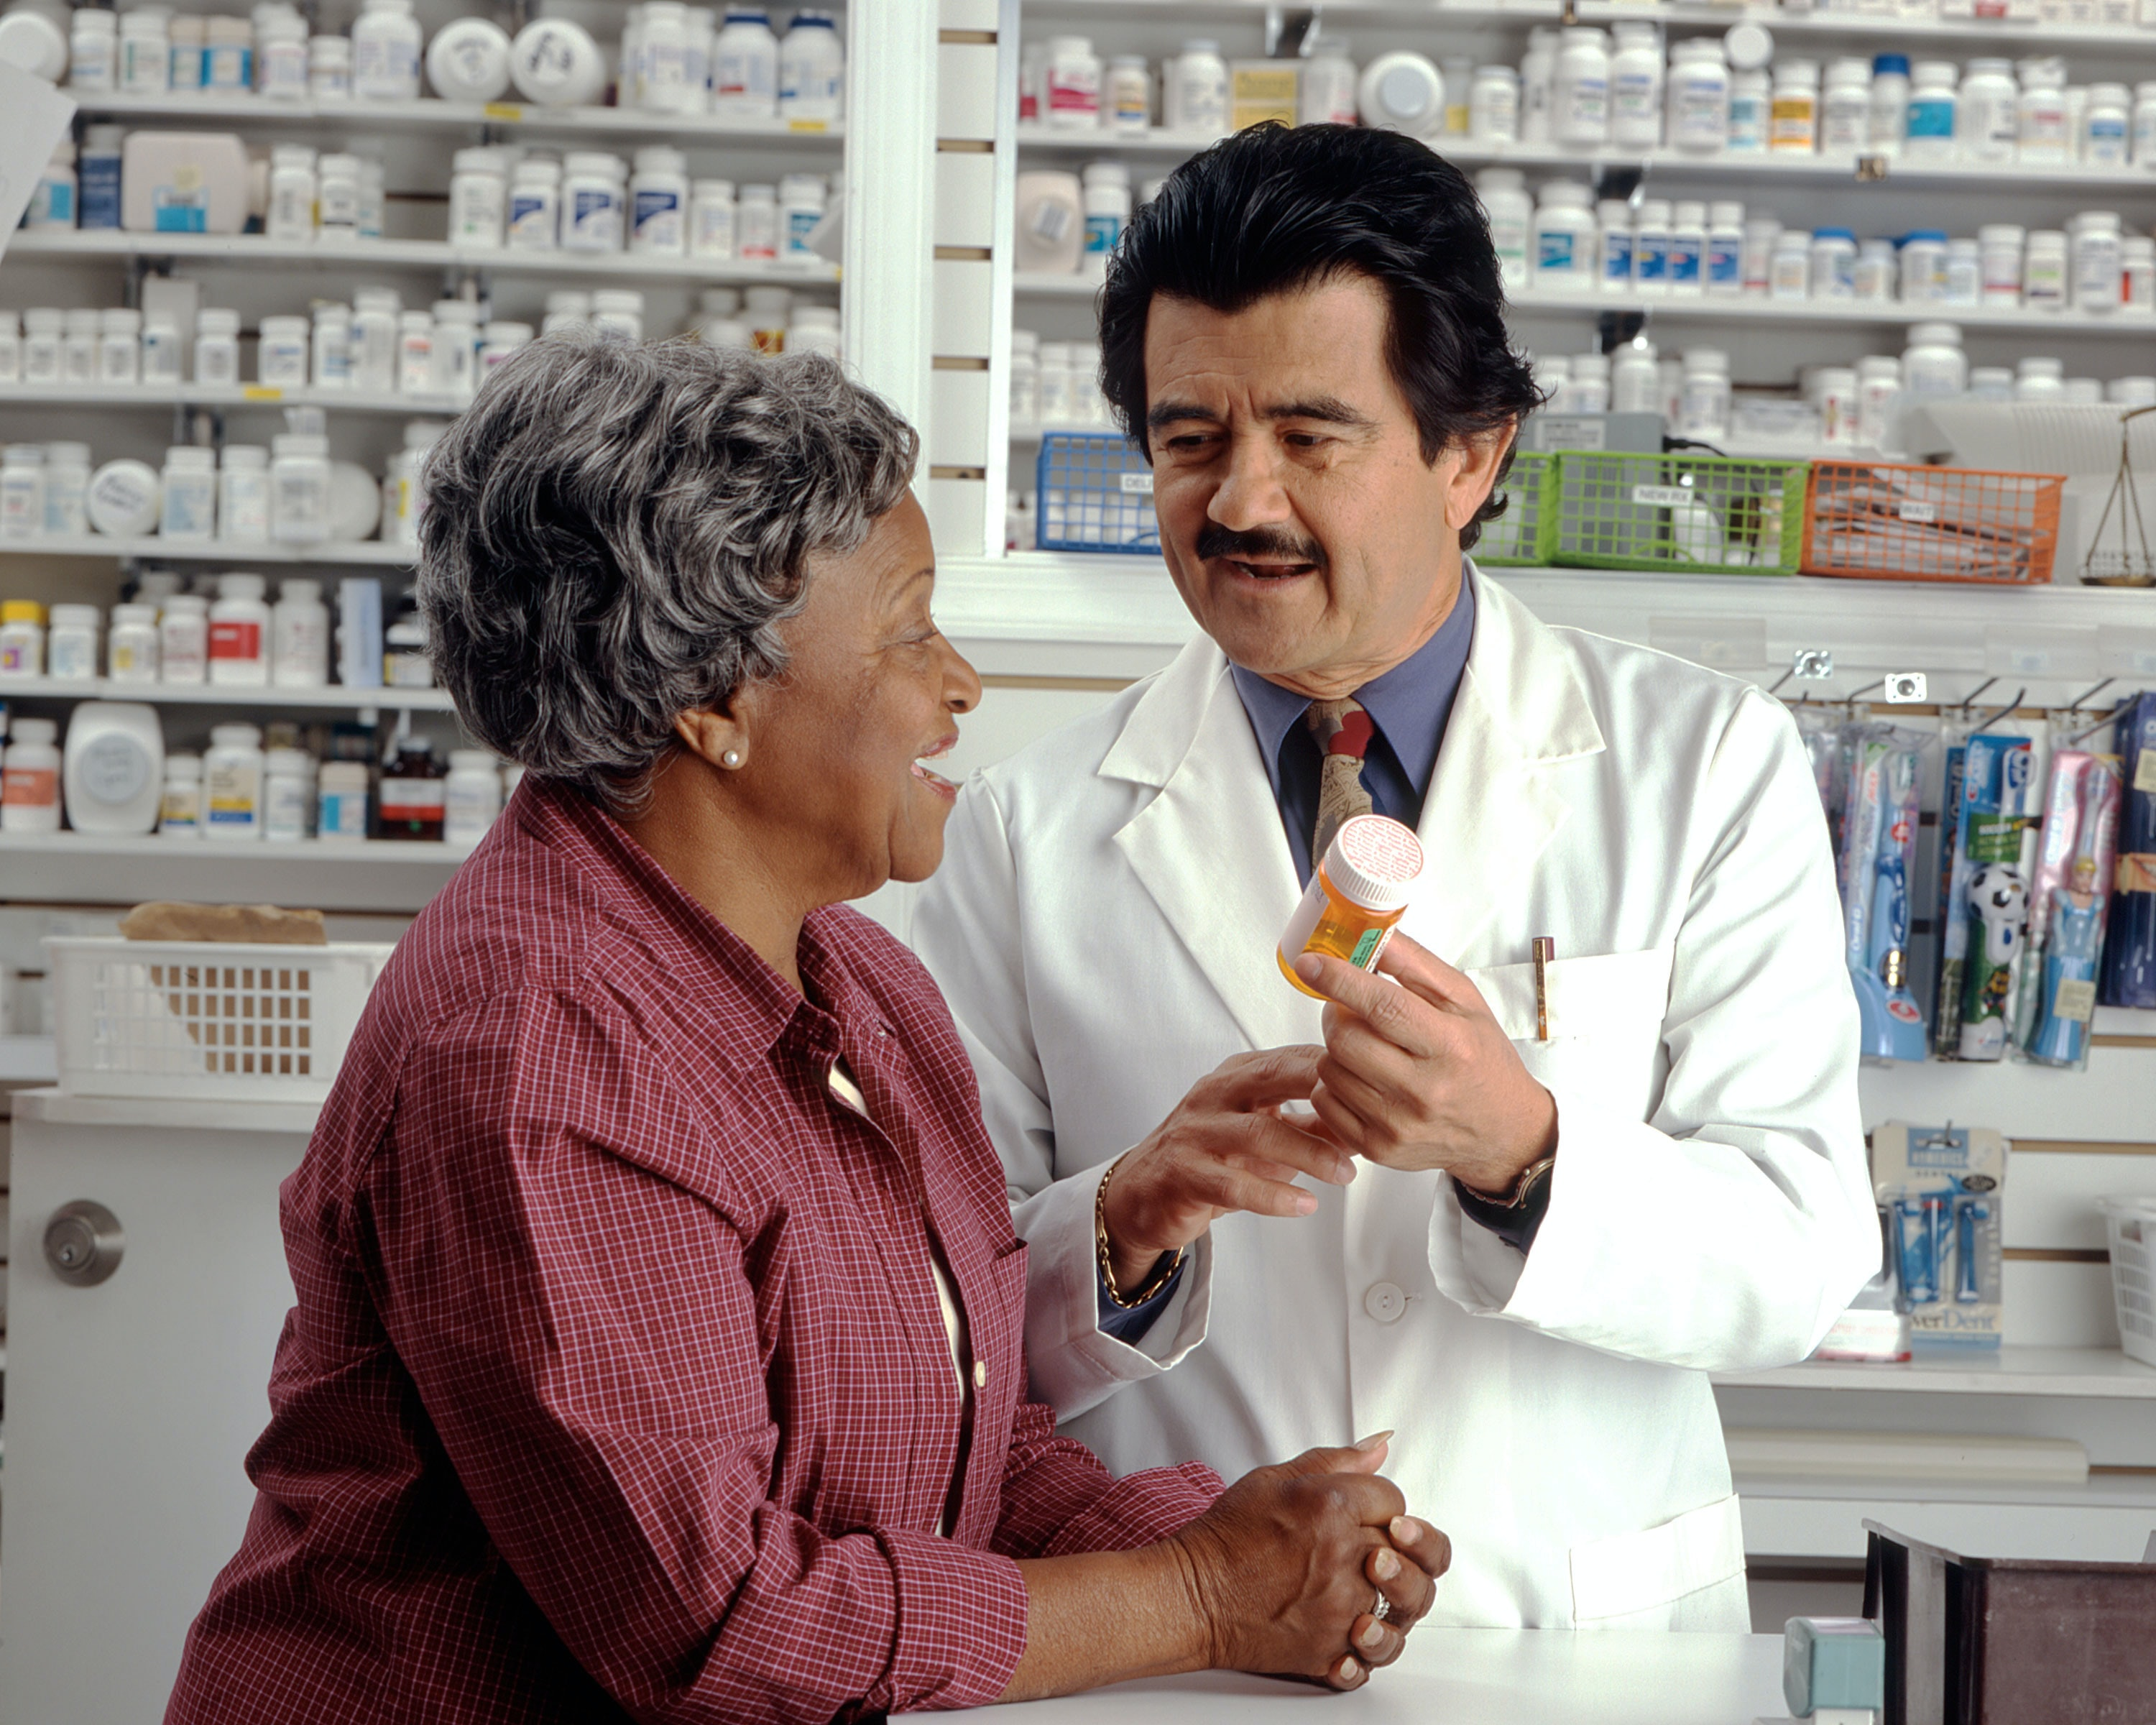 pharmacist answering patients' questions